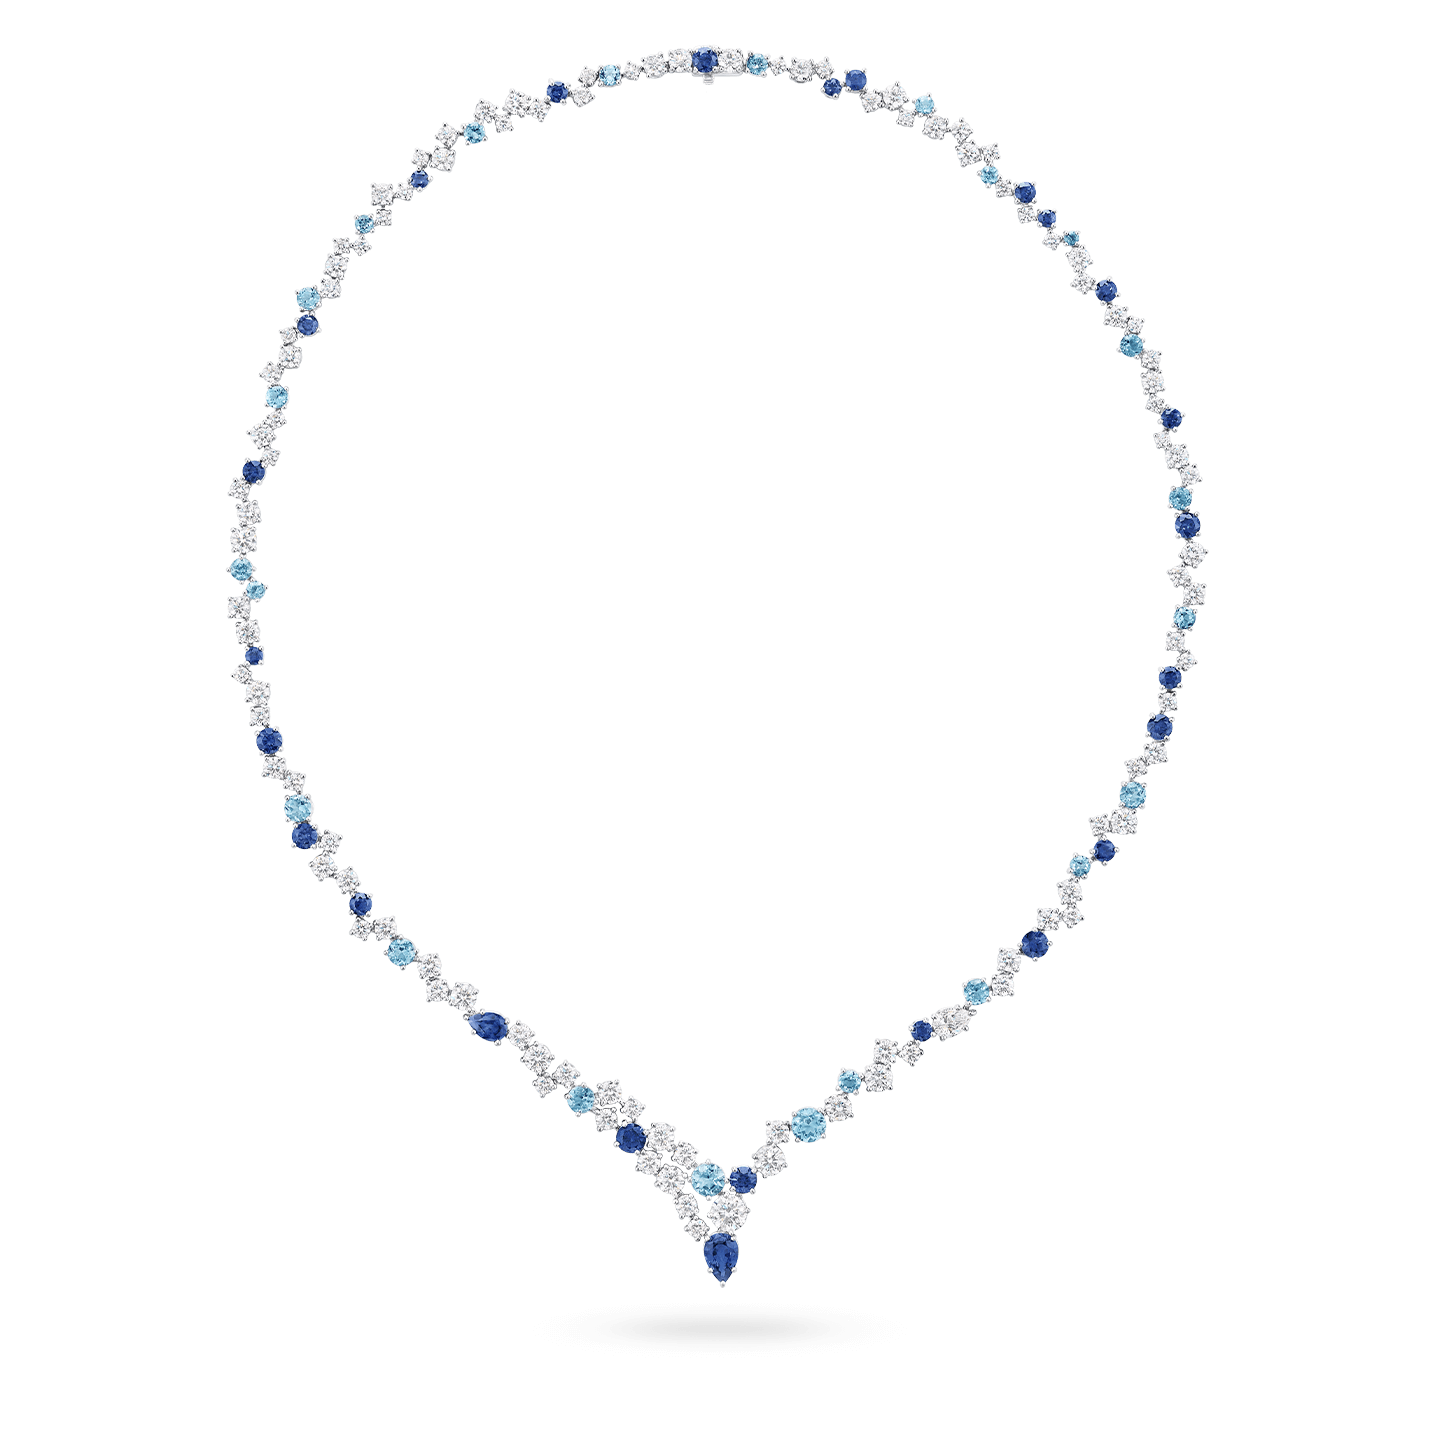 Sparkling Cluster Sapphire Aquamarine and Diamond Necklace, Product Image 1